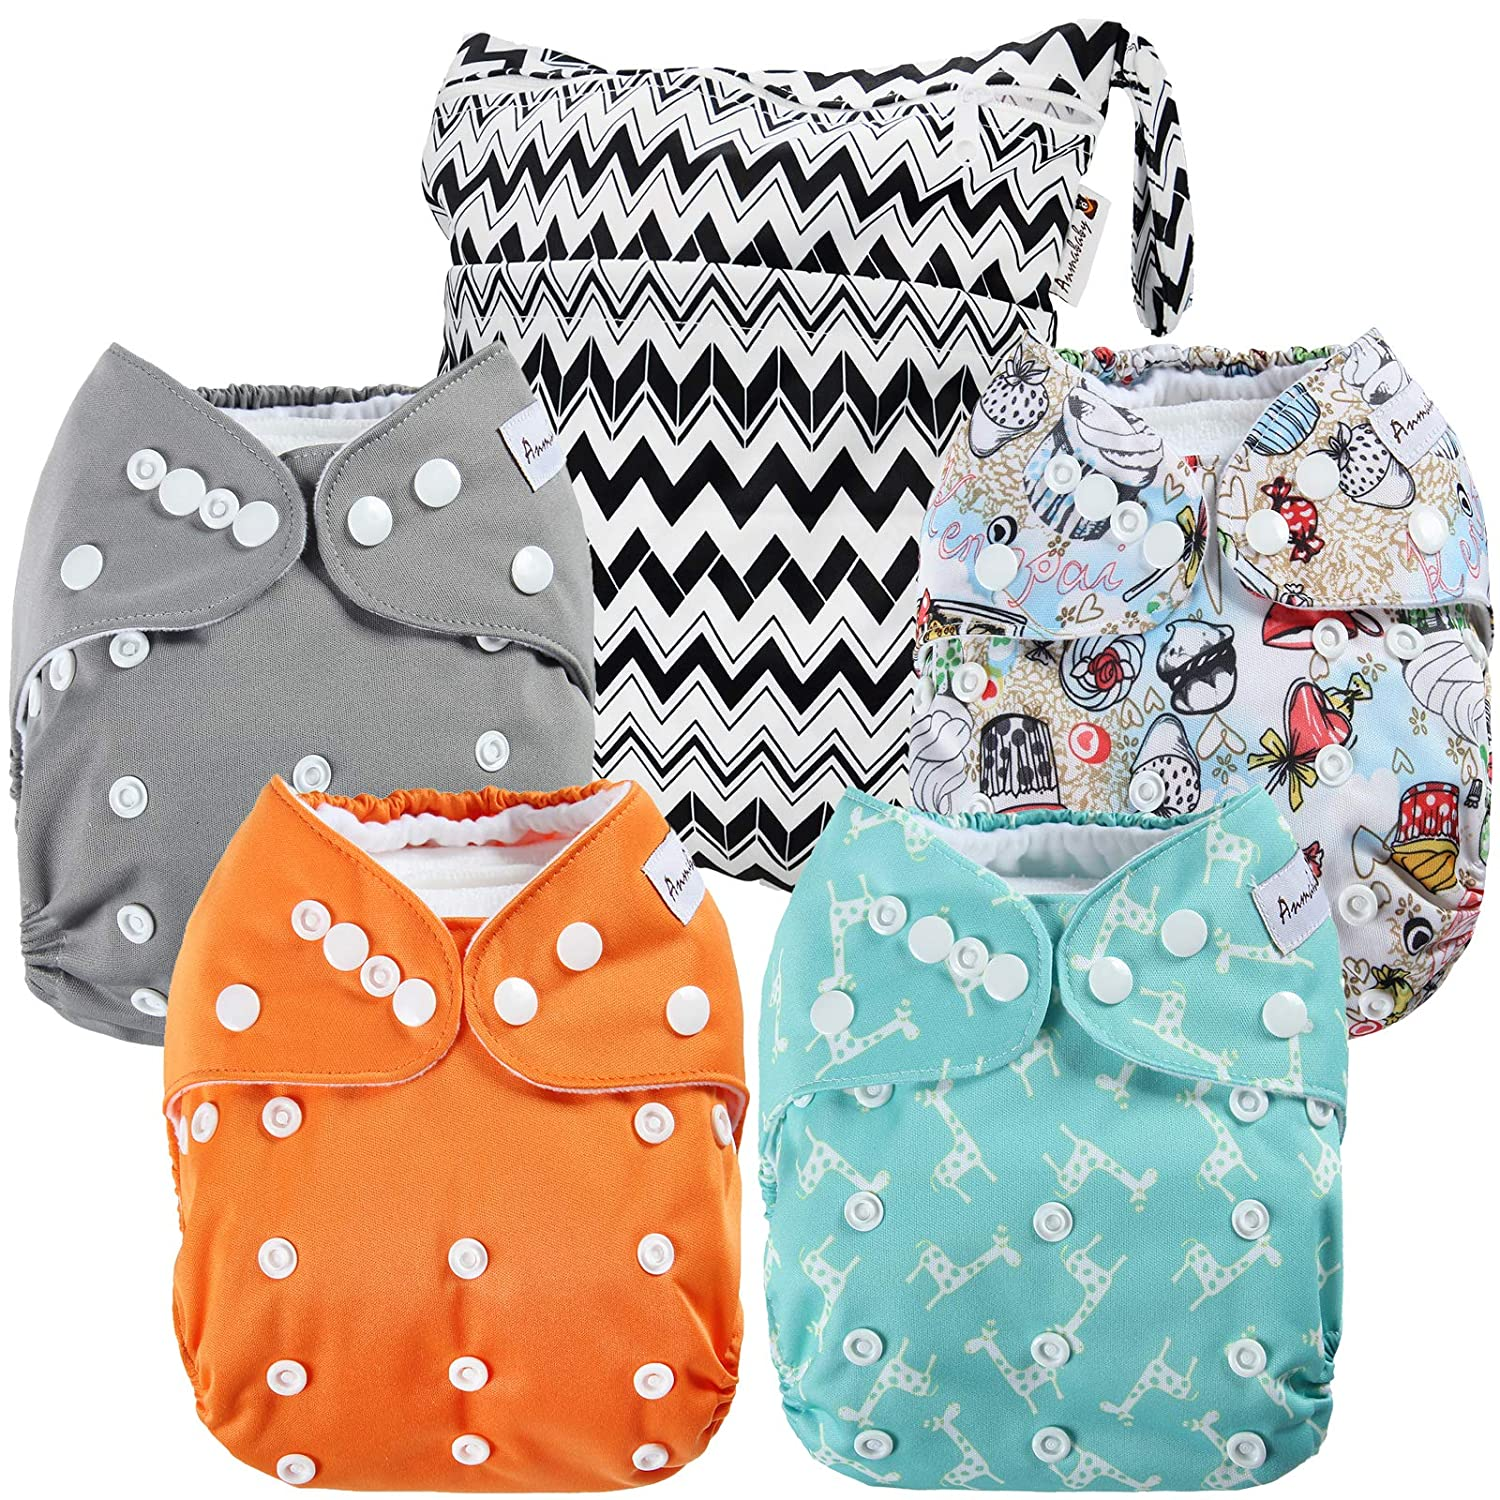 Blueangle Farm Animals Pattern Wet Dry Bag Cloth Diaper Bags Waterproof Washable Reusable Diaper Organizer,2 Pack